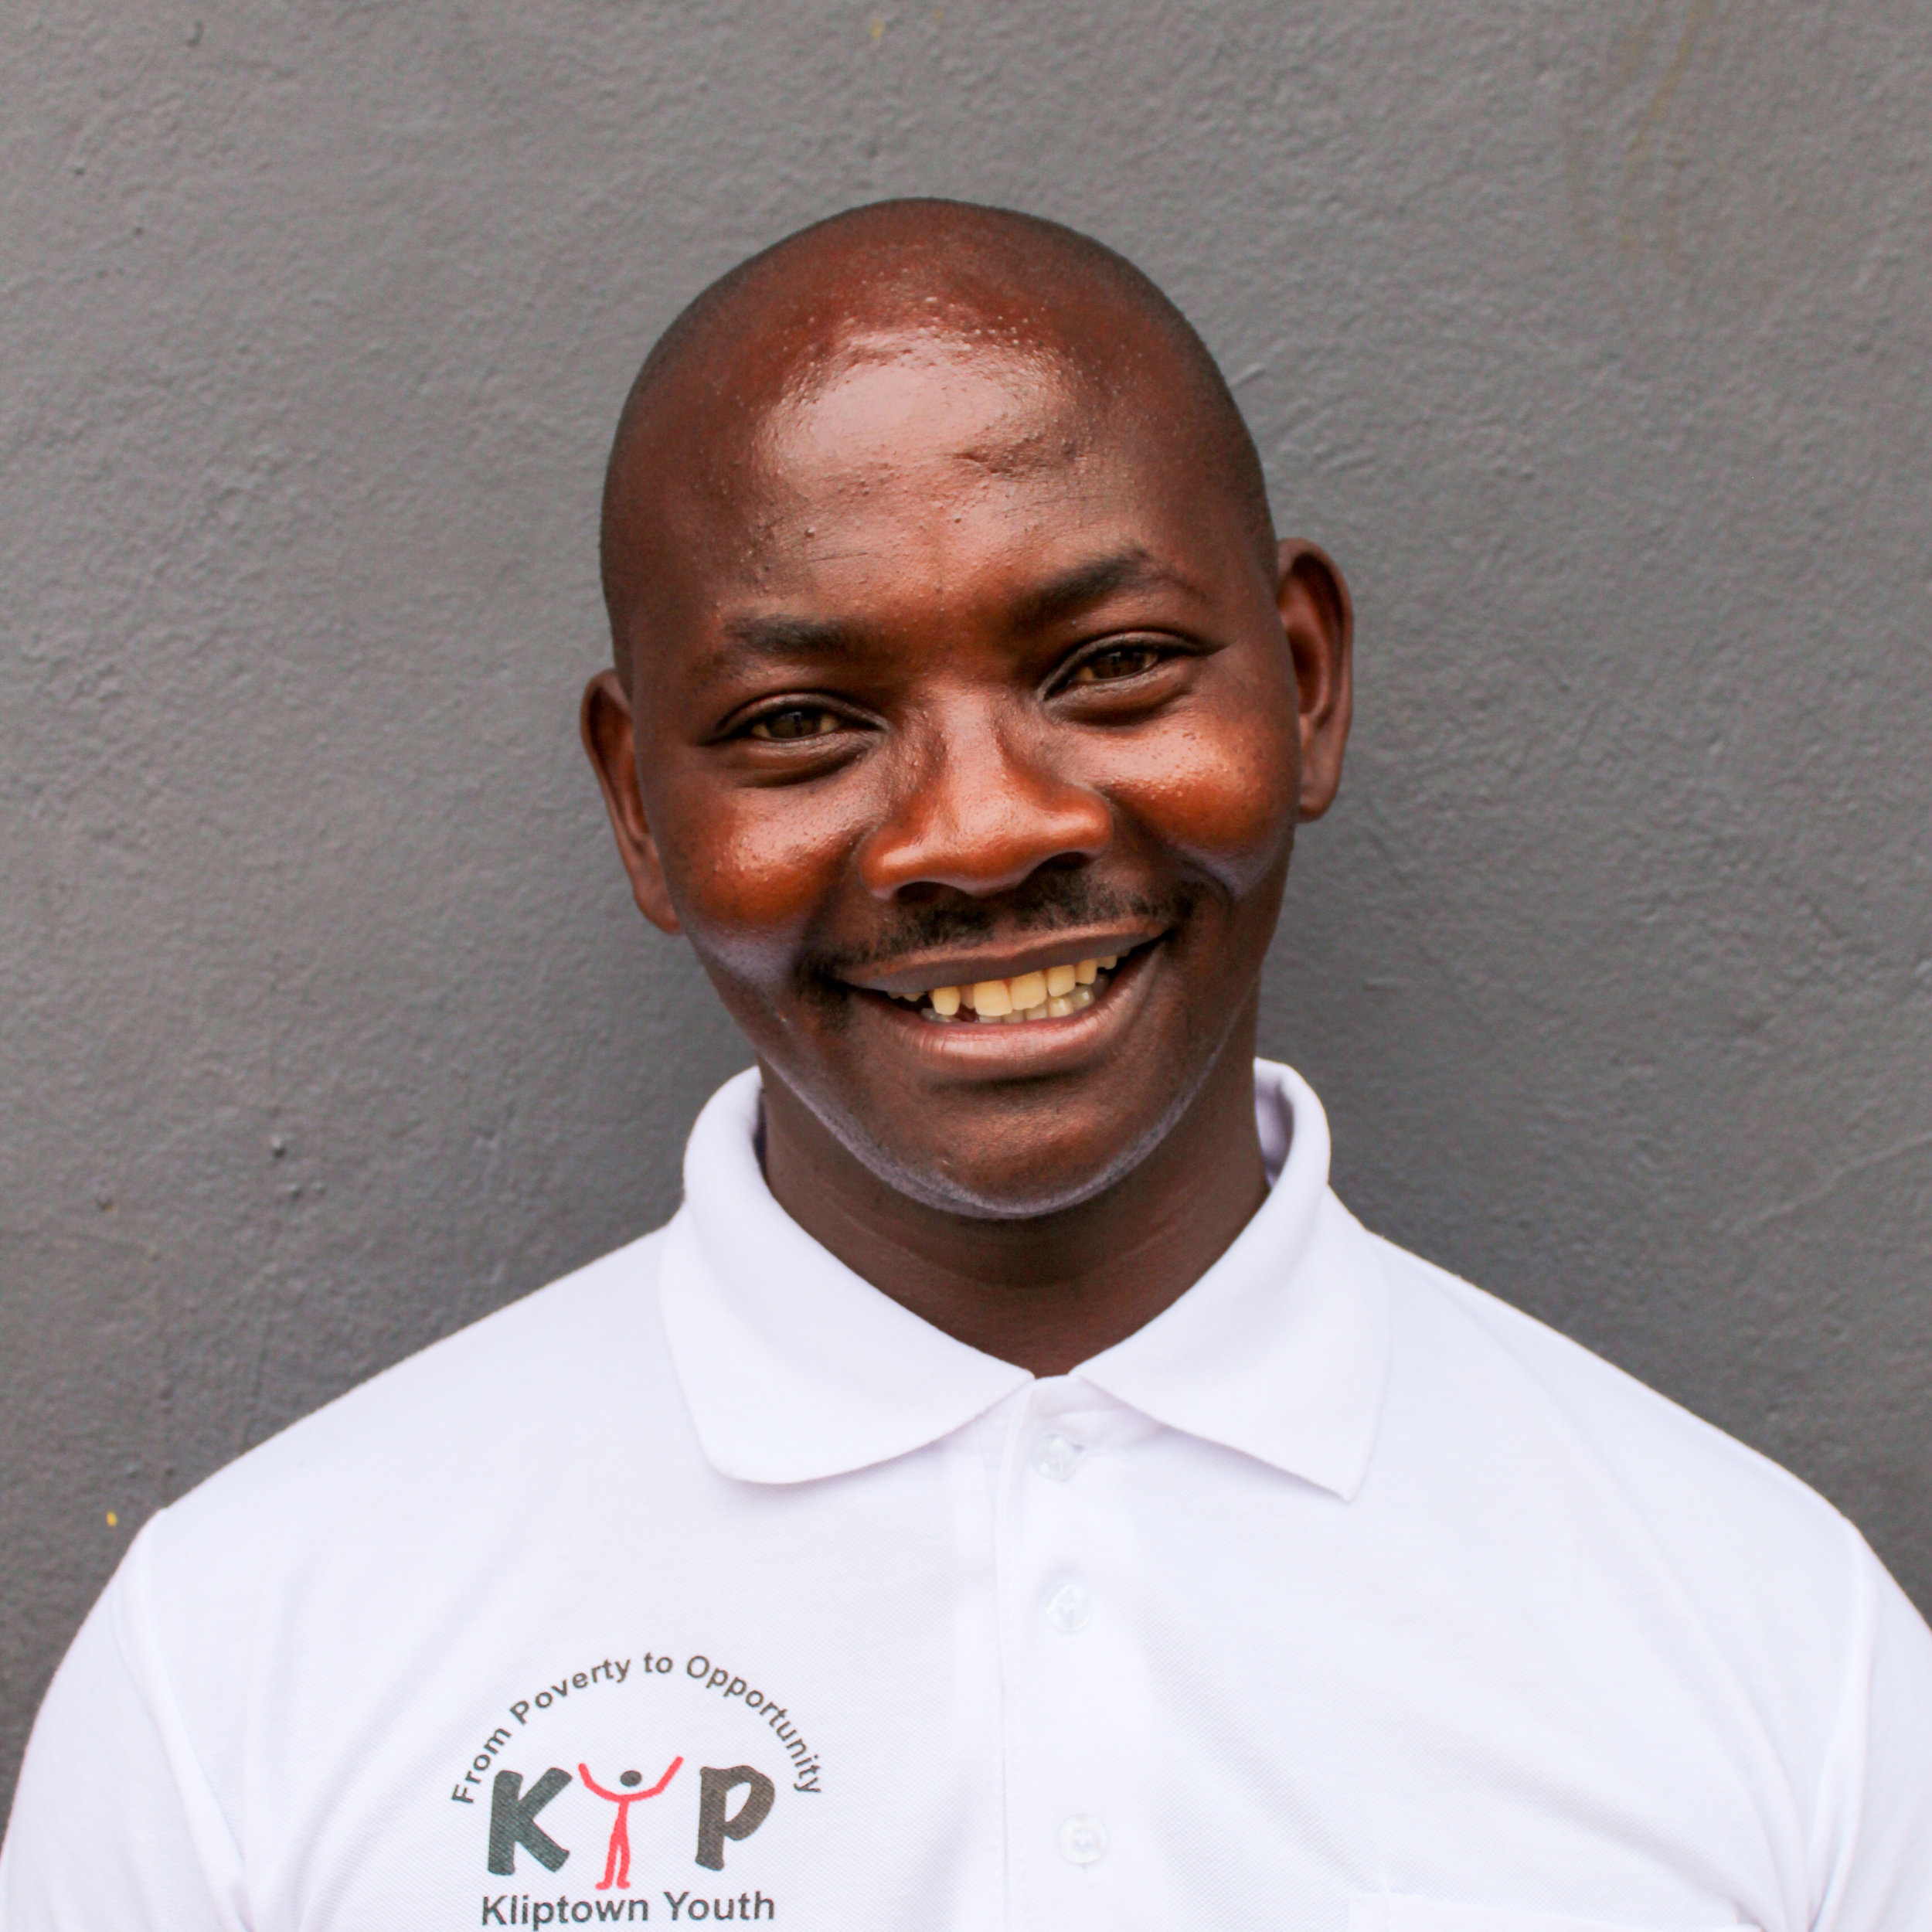 Sipho Dladla: Deputy Director    sdladla@kliptownyouthprogram.org.za   Sipho was one of the founders of KYP and ensures that all program objectives and goals are achieved. He communicates with program managers to complete each program's administrative duties. He is very competent in IT technical support and is one of the One Laptop Per Child experts. He also acts as one of the main performers and teachers of the Gumboots dance.